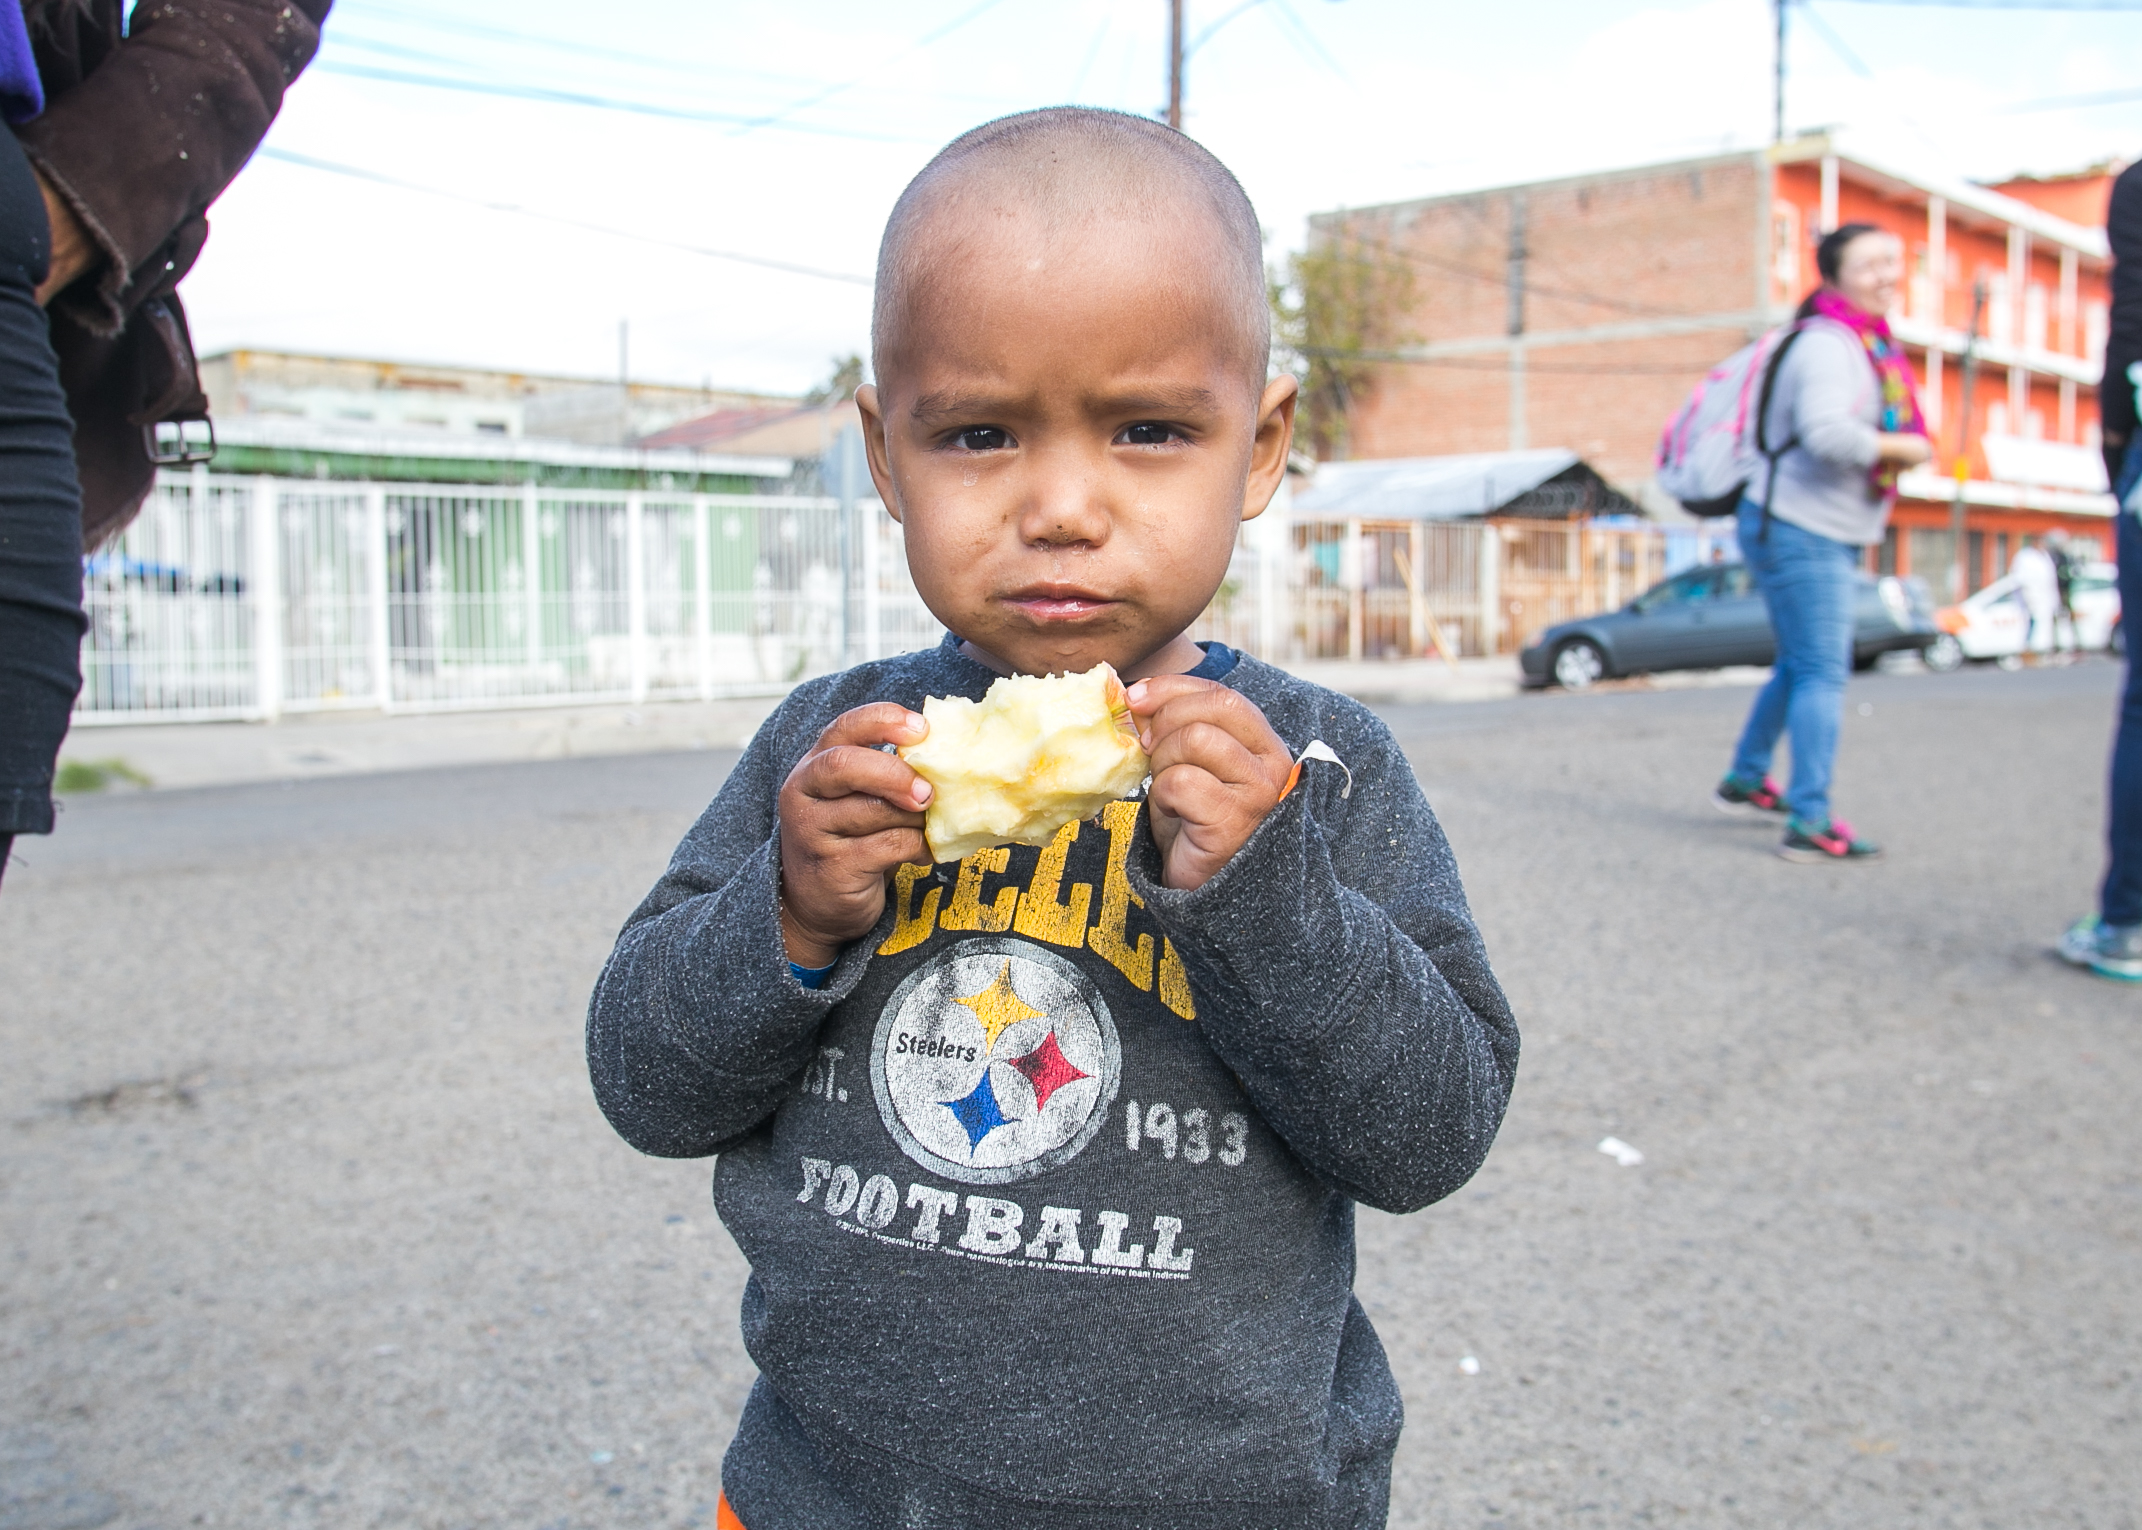 A young Honduran refugee sporting a Steelers sweatshirt eats an apple provided by World Central Kitchen at the El Chinchetta refugee compound in Central Tijuana.